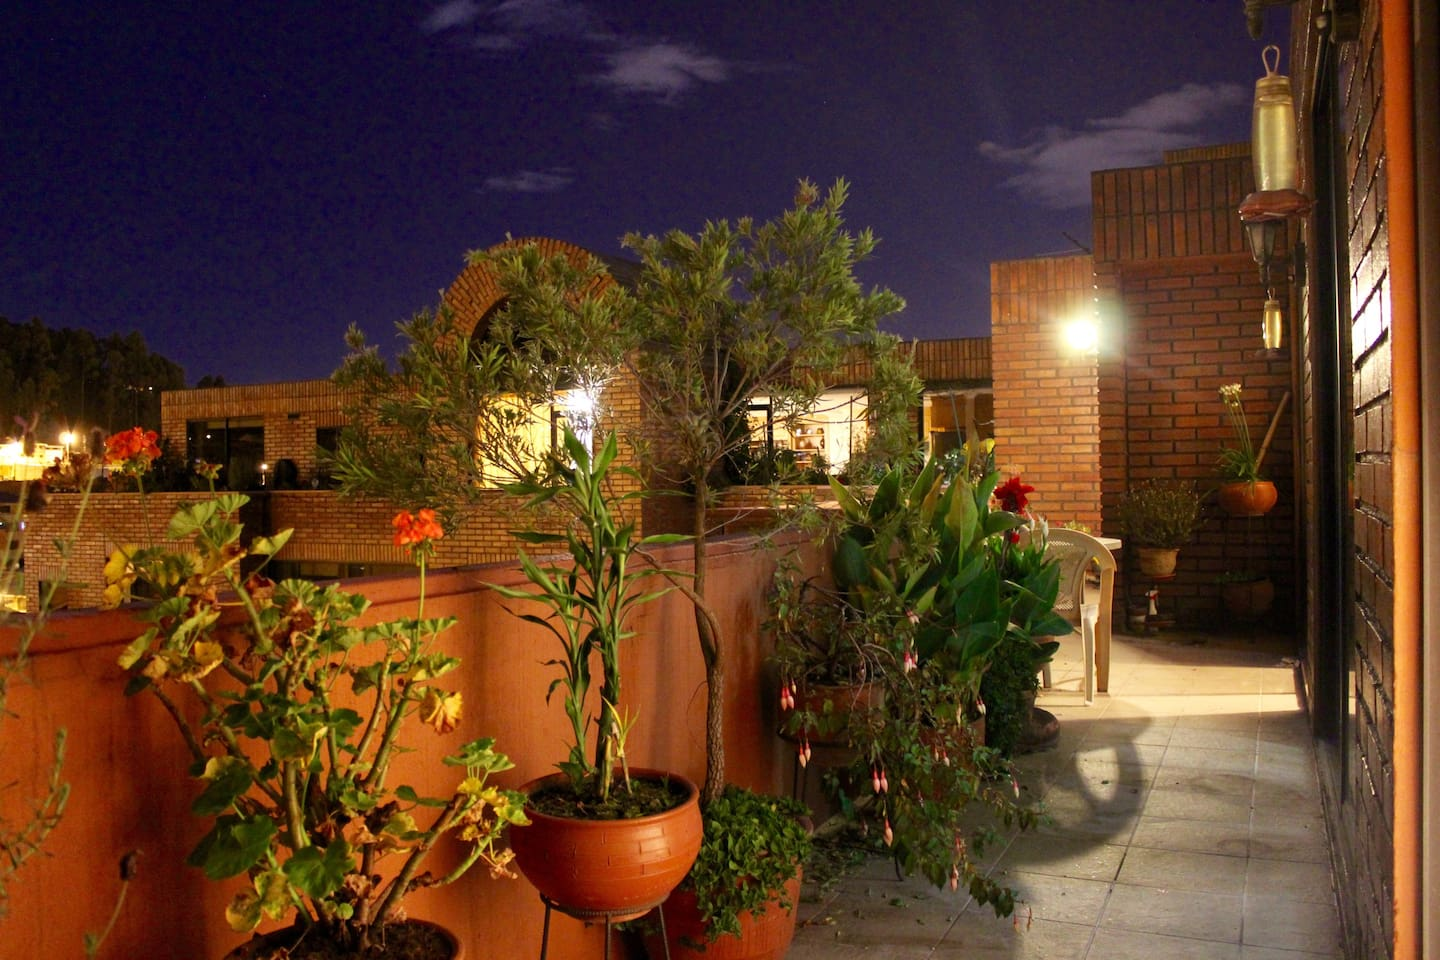 This is an evening view of the magnificent terrace of the apartment.